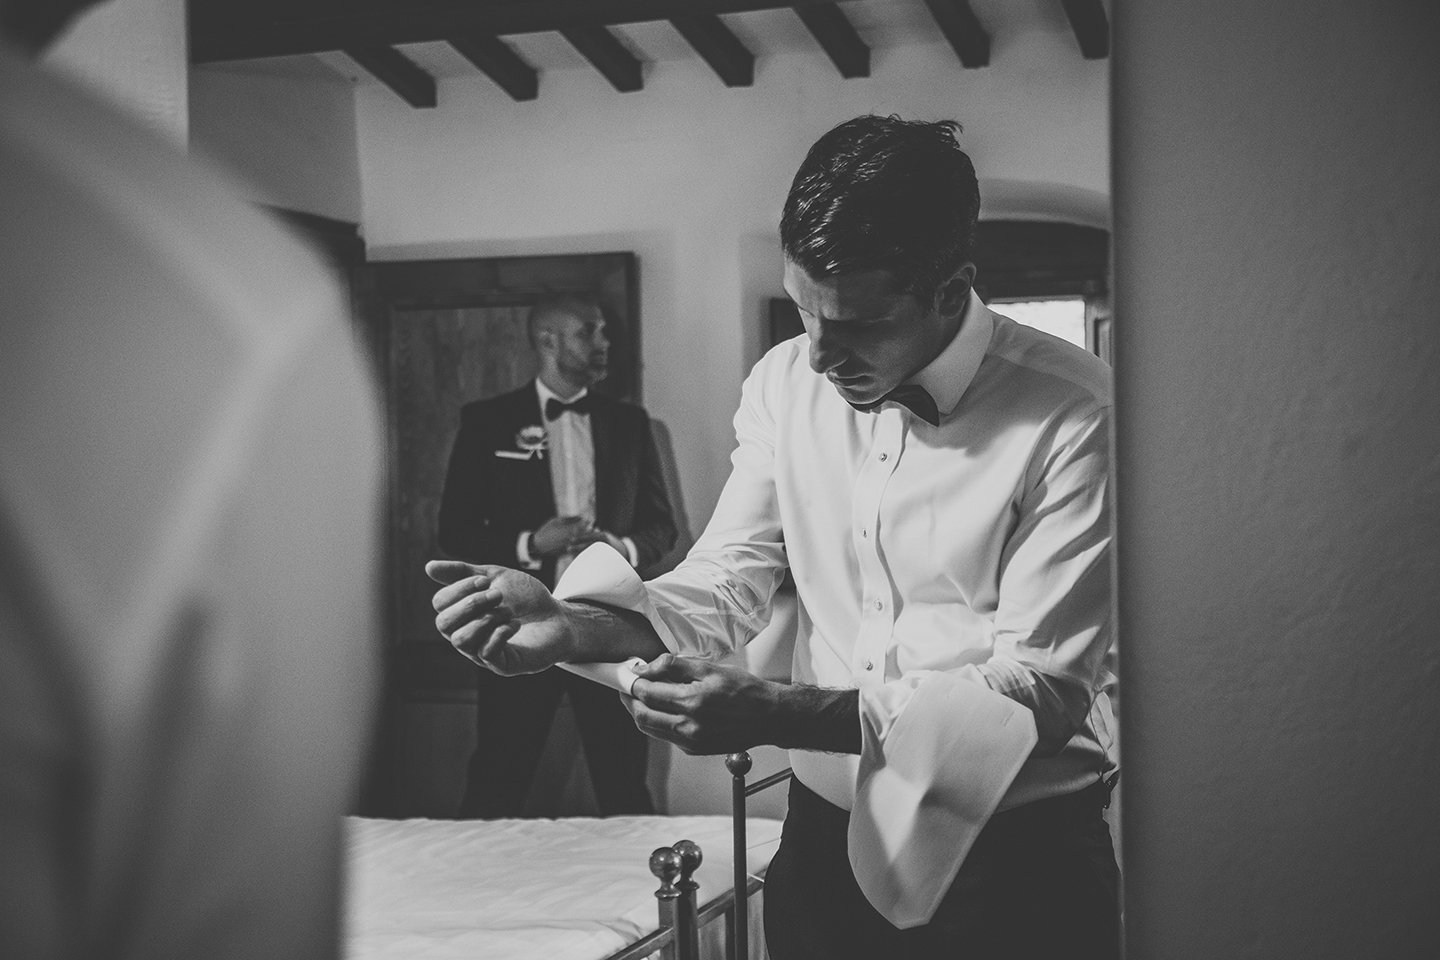 groom-getting-ready-iranian-wedding-vignamaggio-